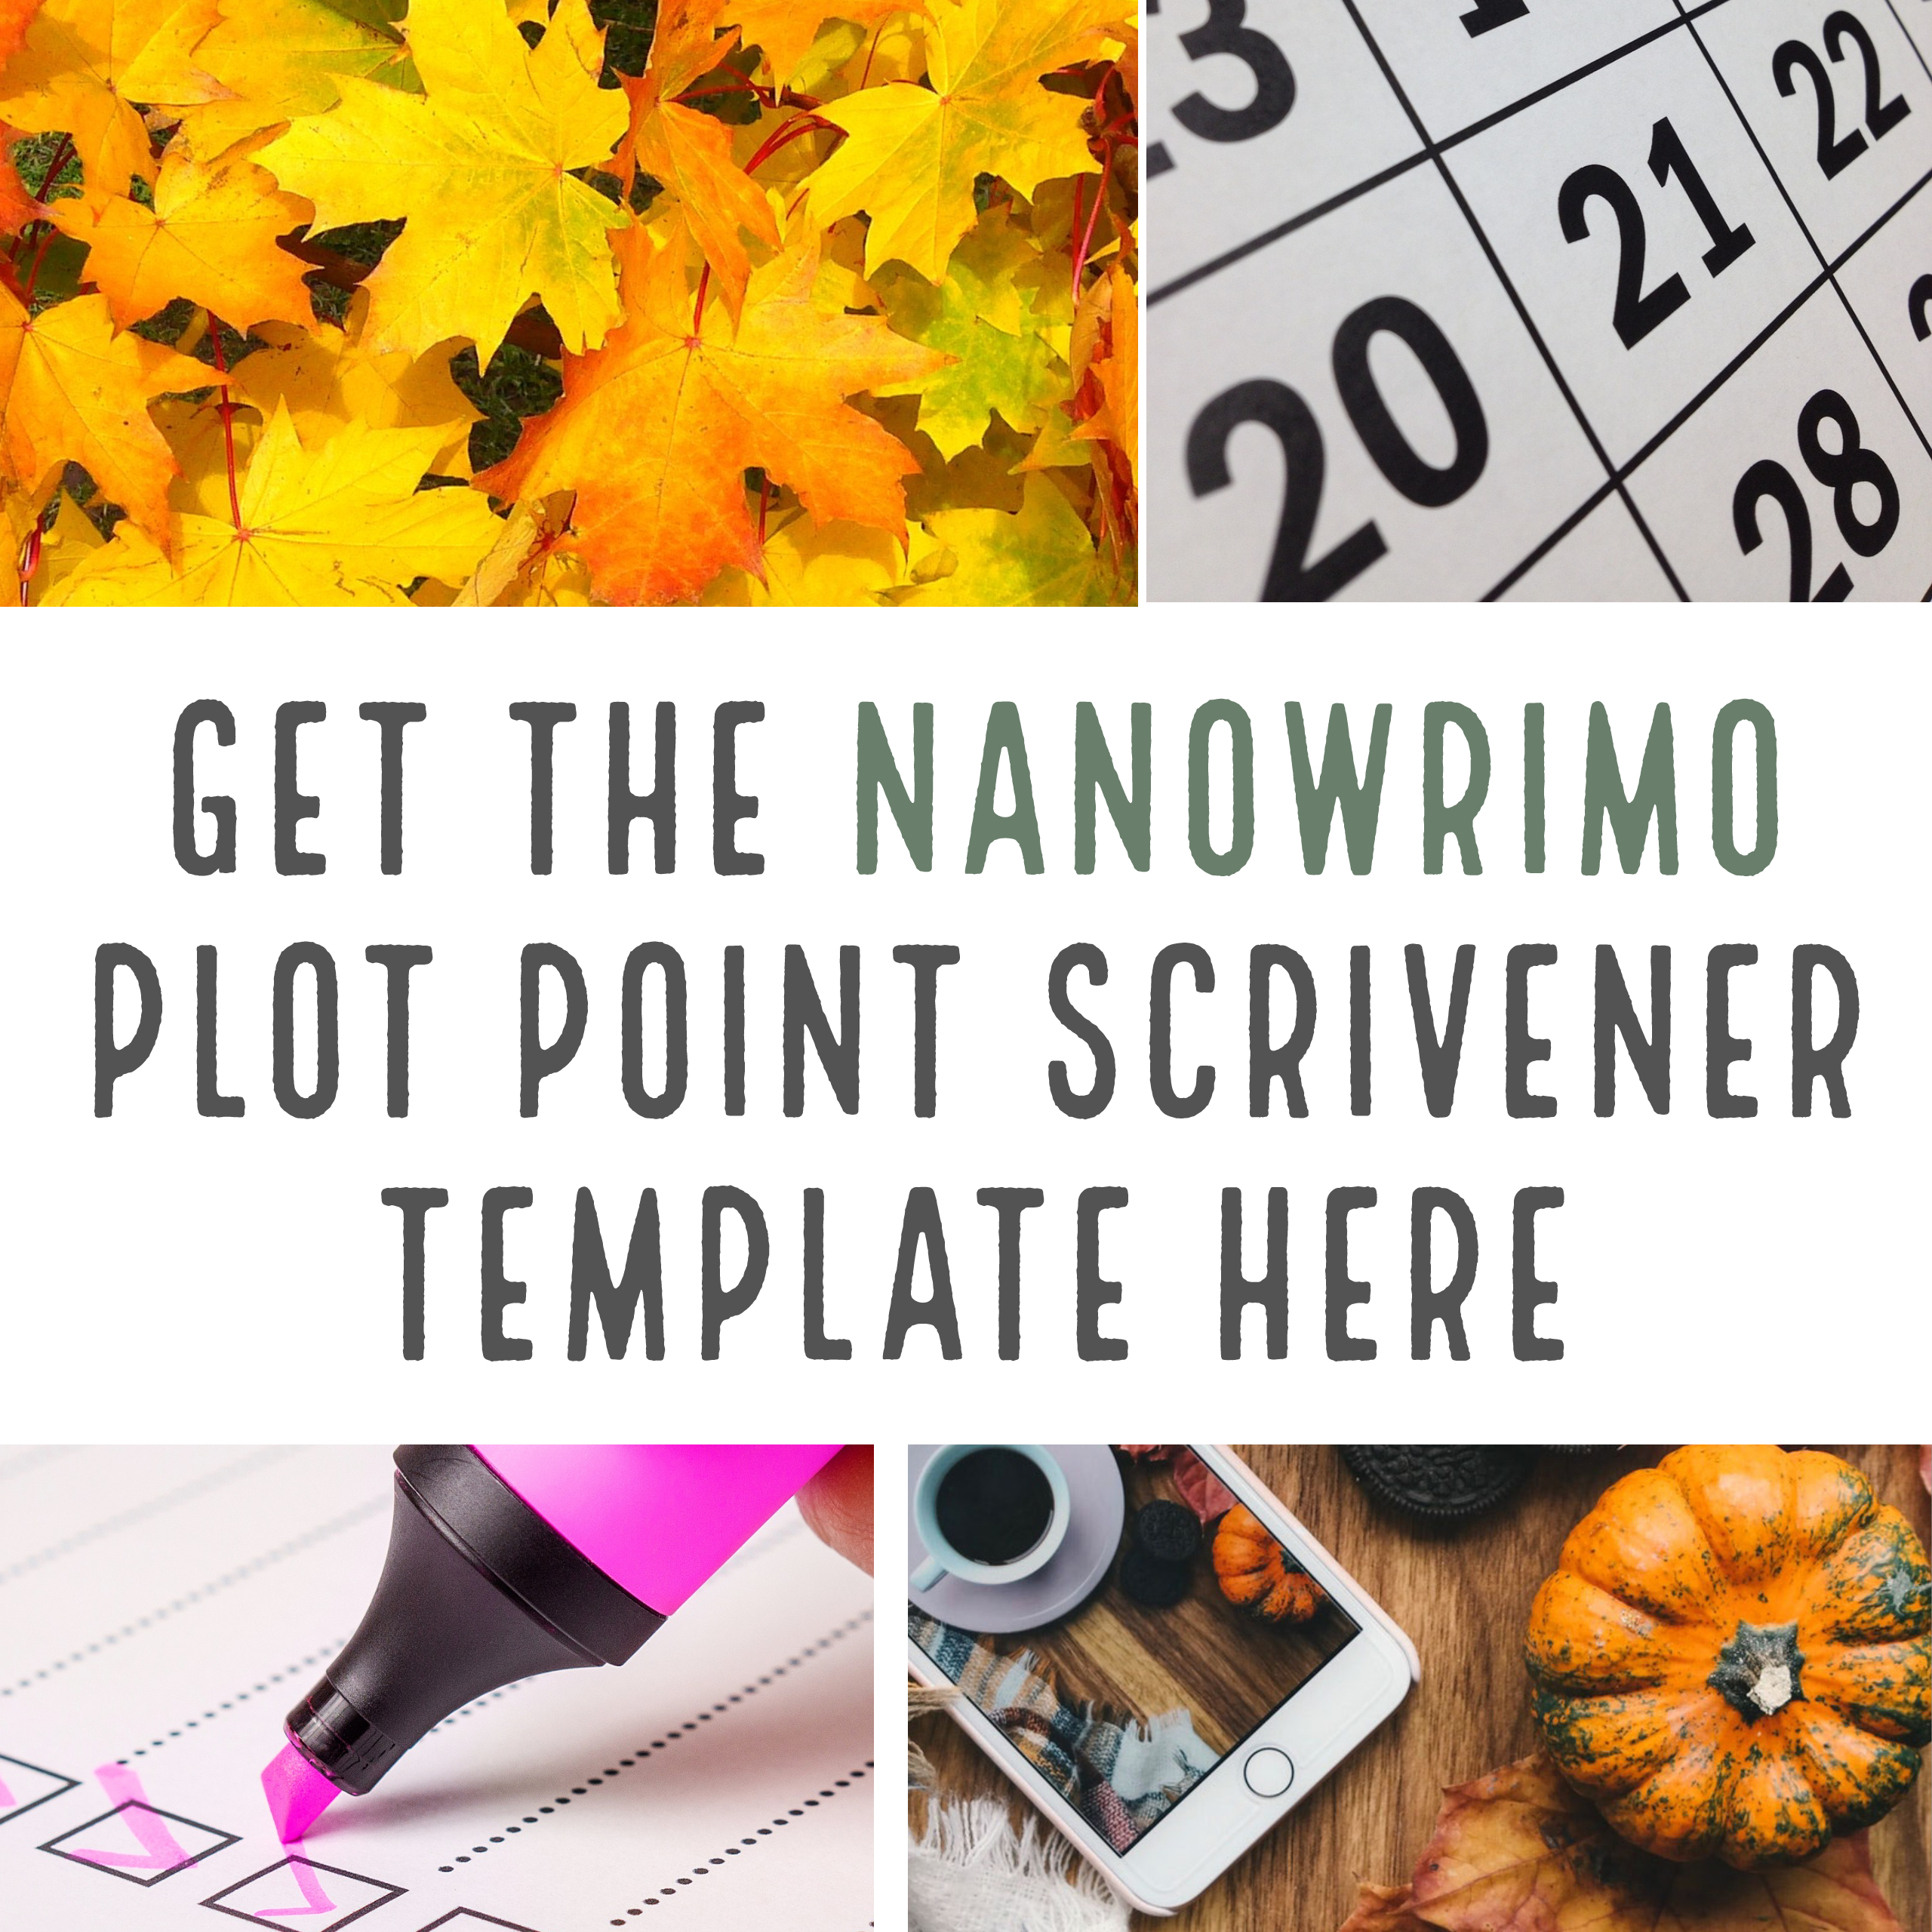 NaNoWriMo Plot Point Scrivener Template